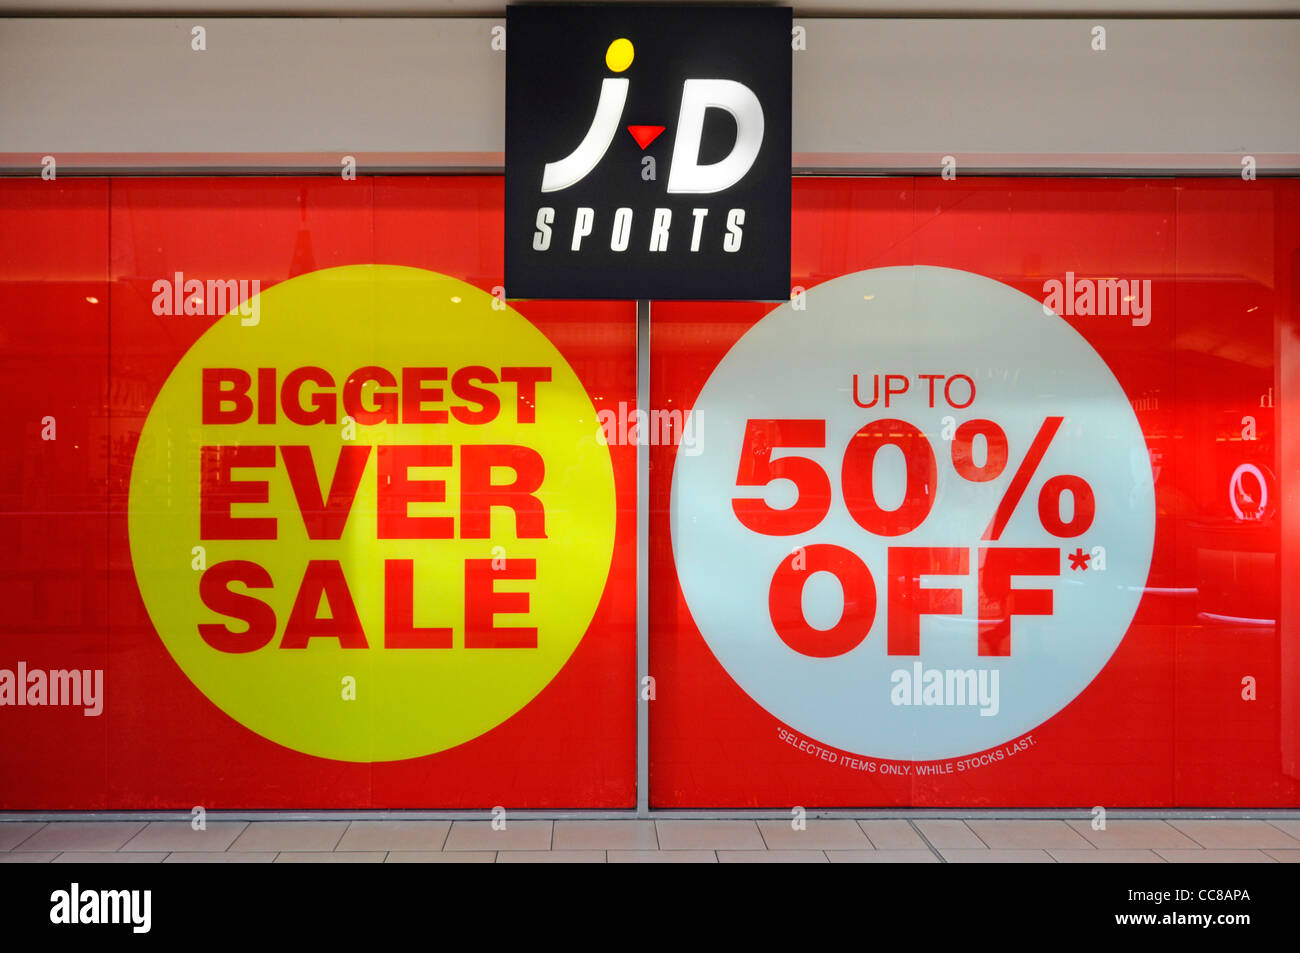 jd sports shop front store window covered in large sign up to 50